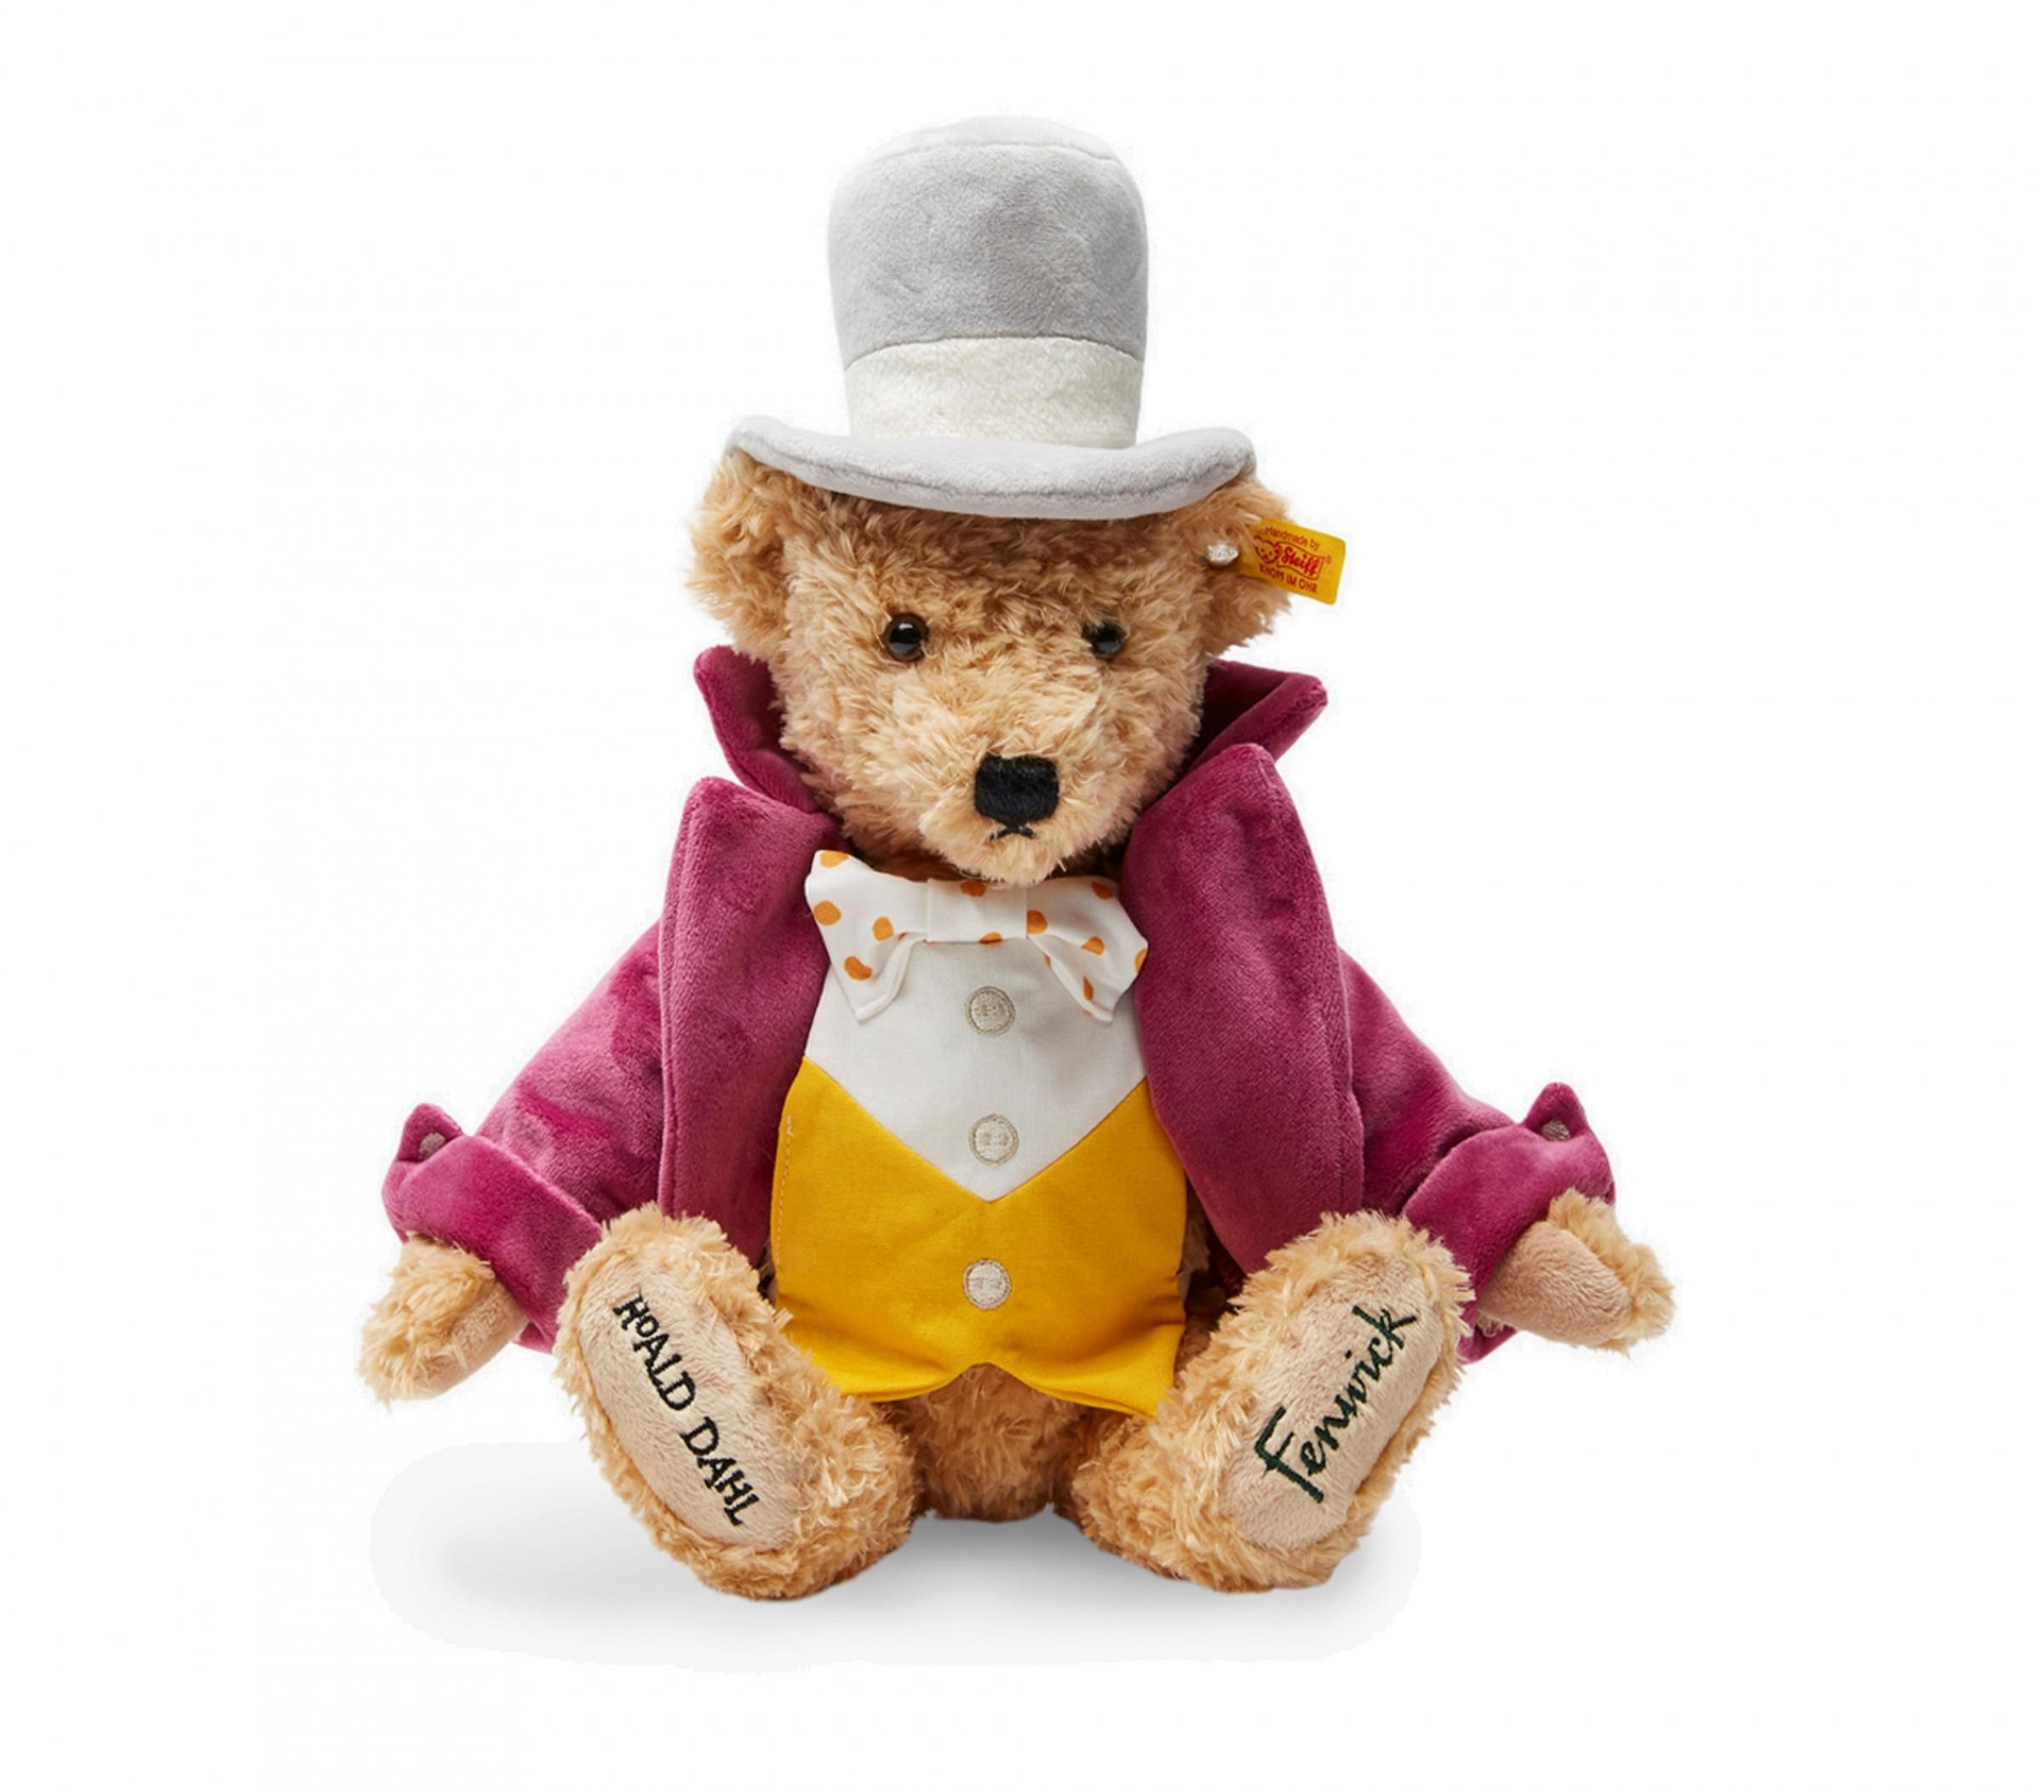 This adorable Willy Wonka teddy bear is exclusive to Fenwick stores - Gazette